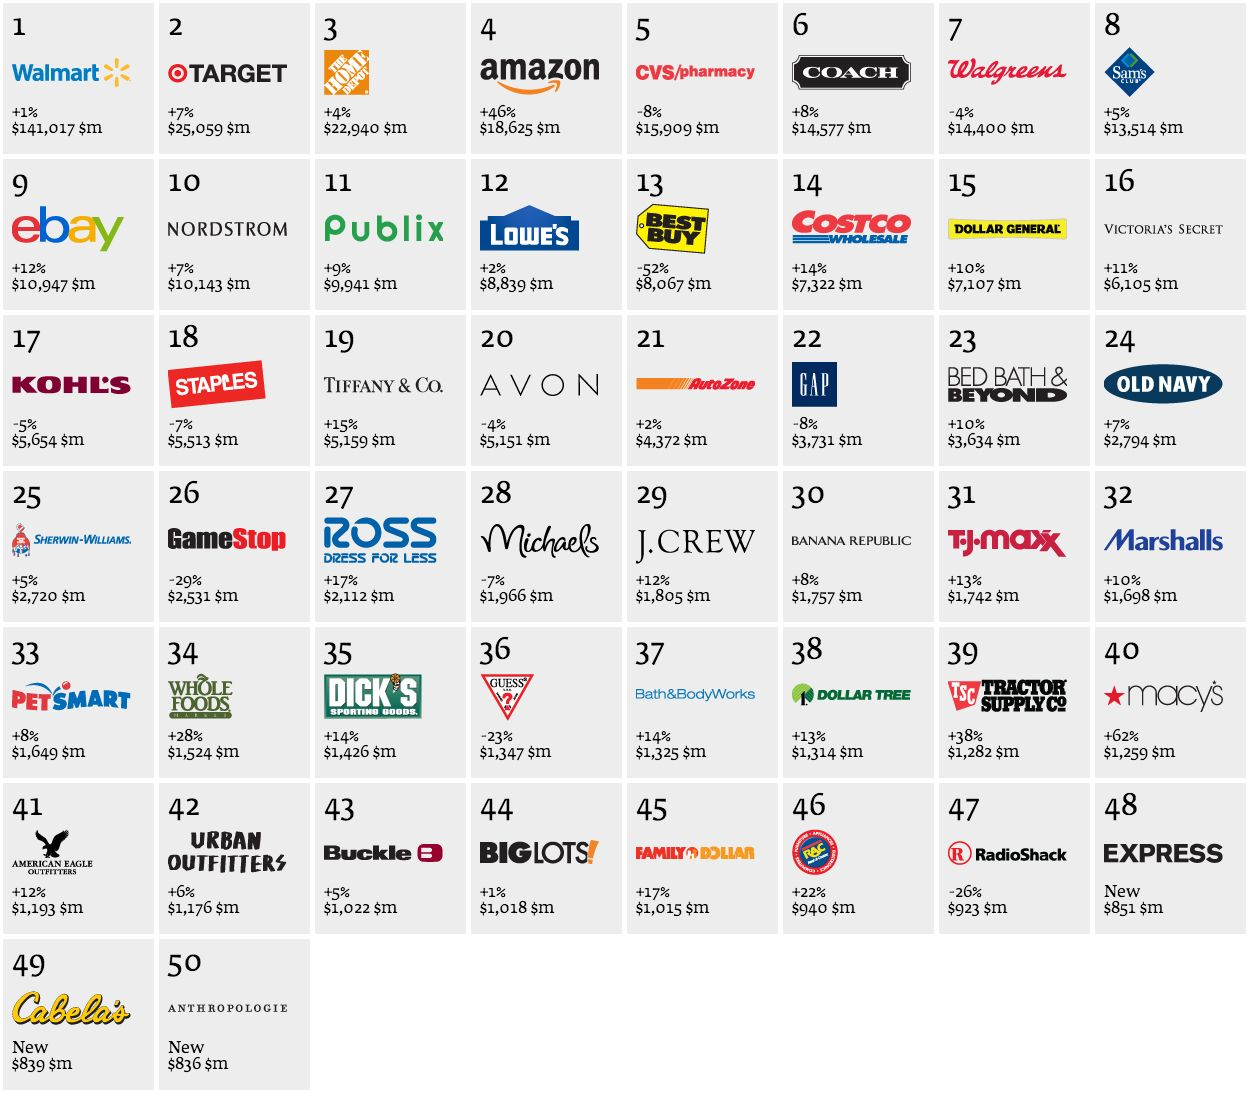 Top 10 most popular fashion brands in the world - Interbrand Reveals The Best Retail Brands Of 2013 And The Ones Losing Their Luster